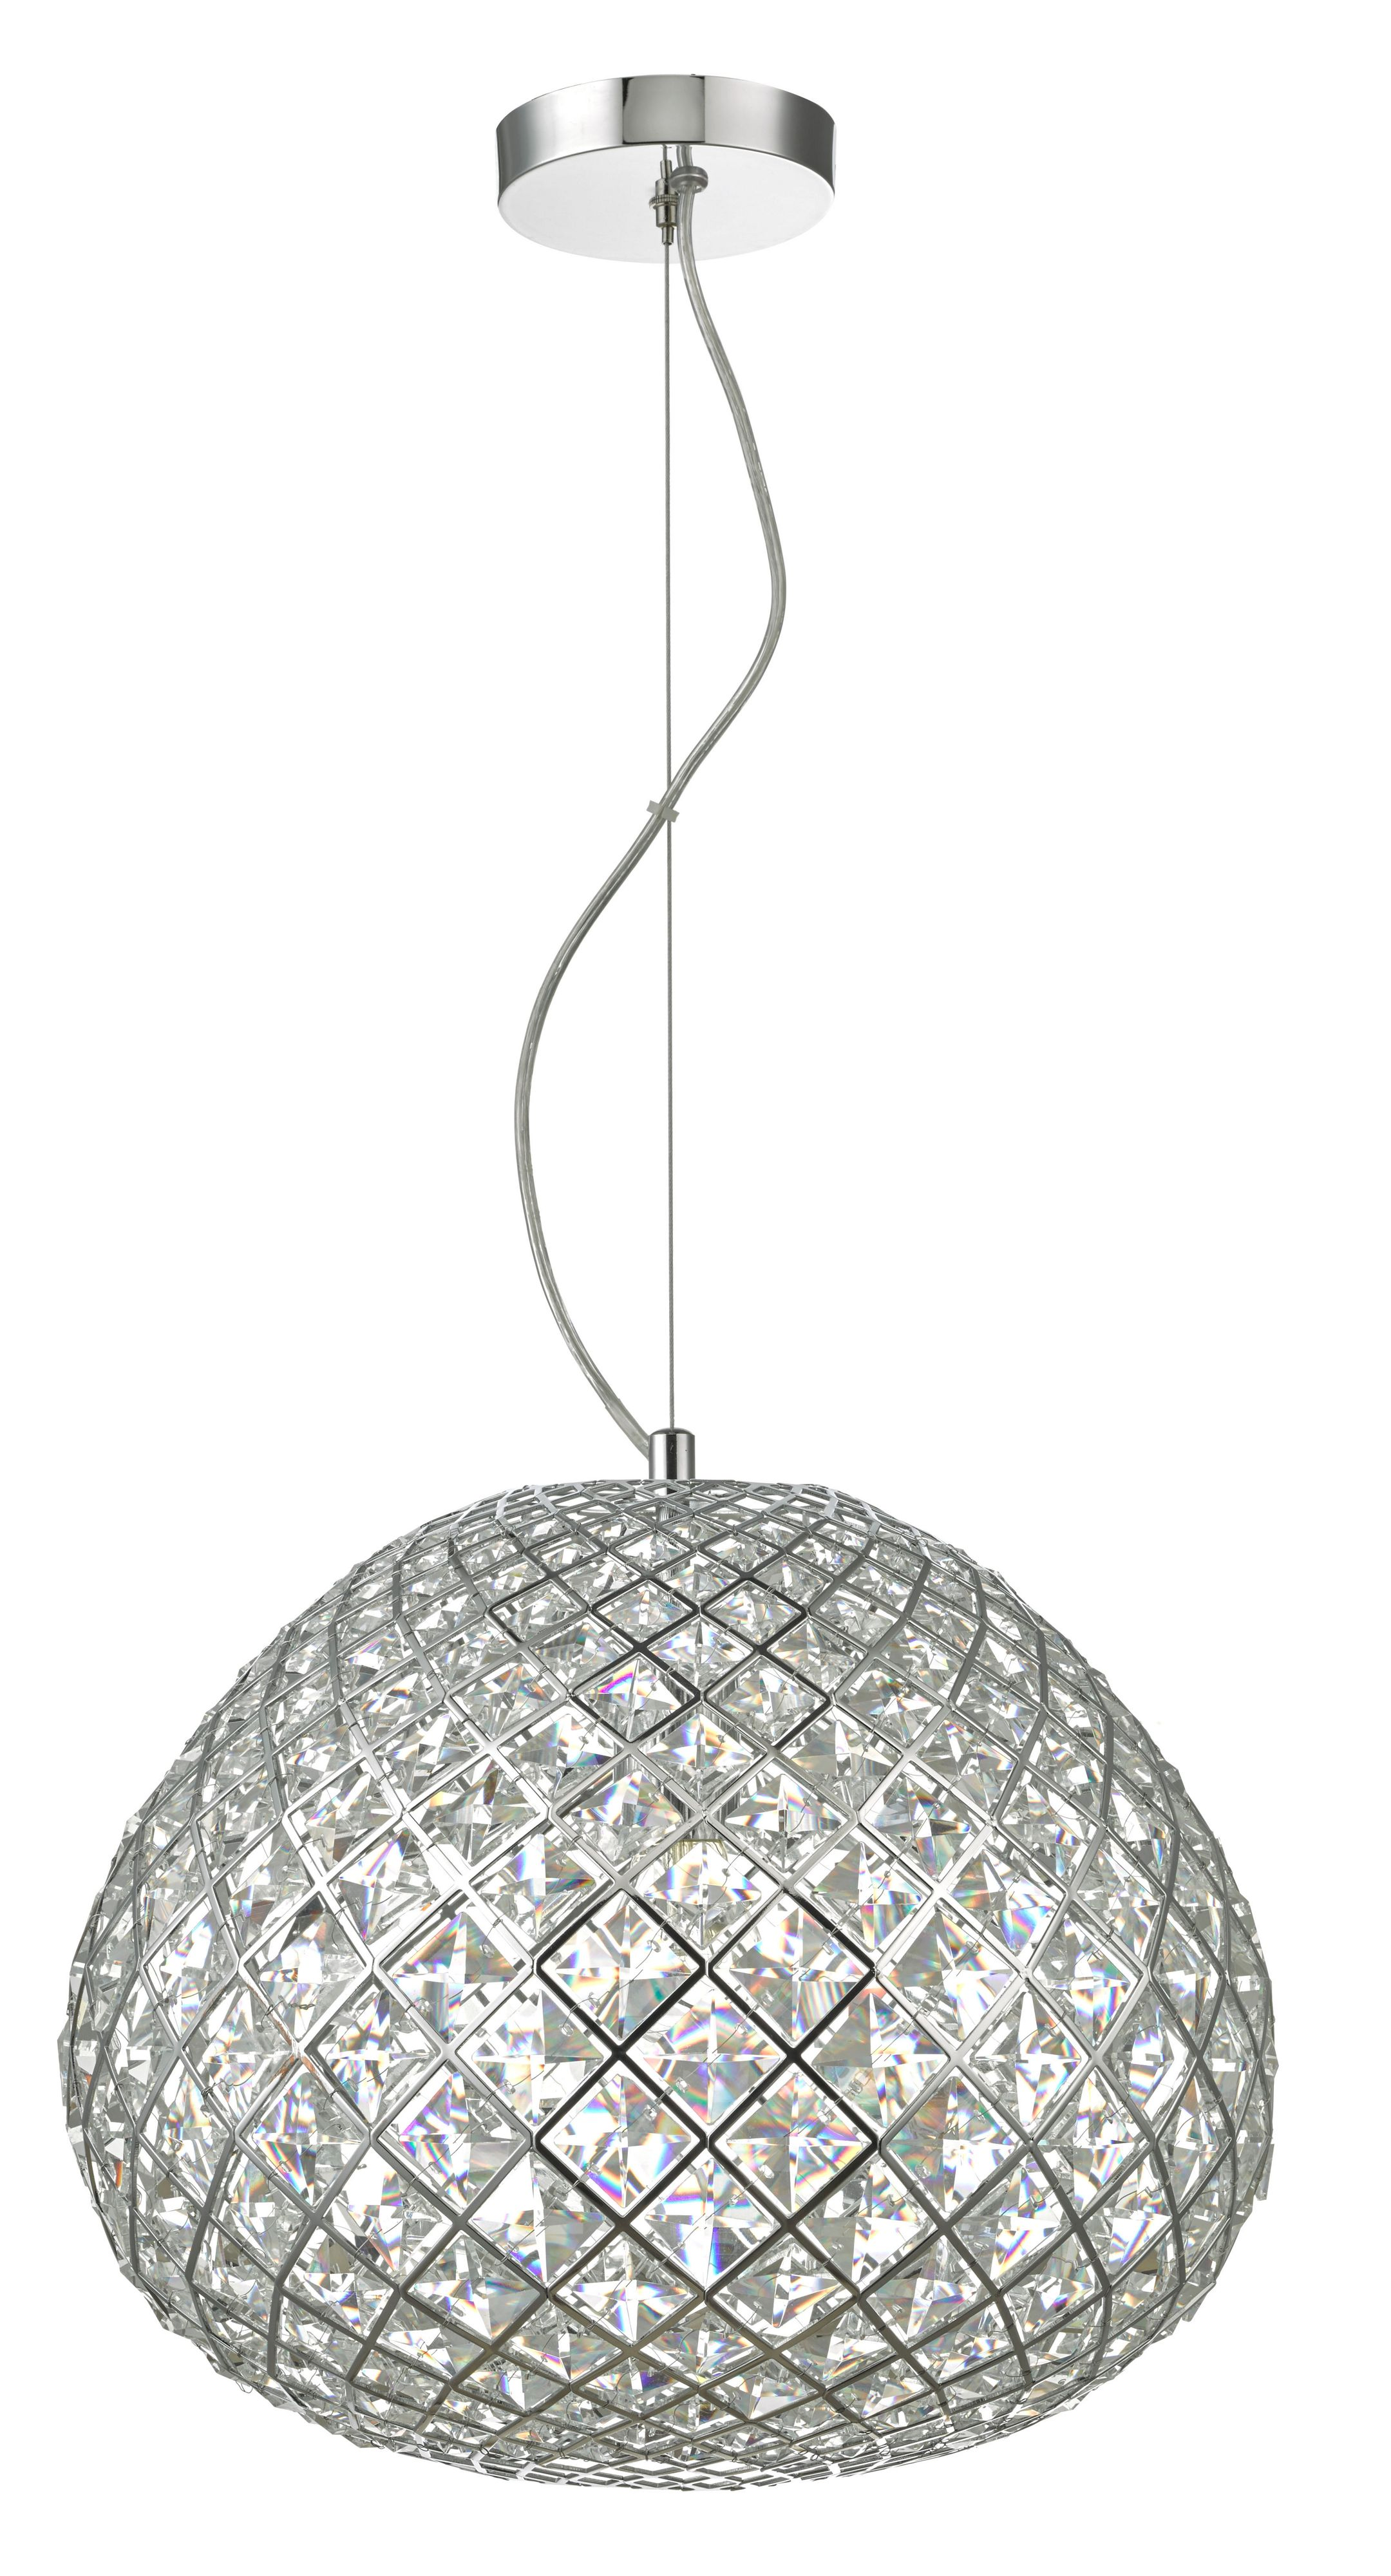 asteria lights lumiart ceiling light crystal